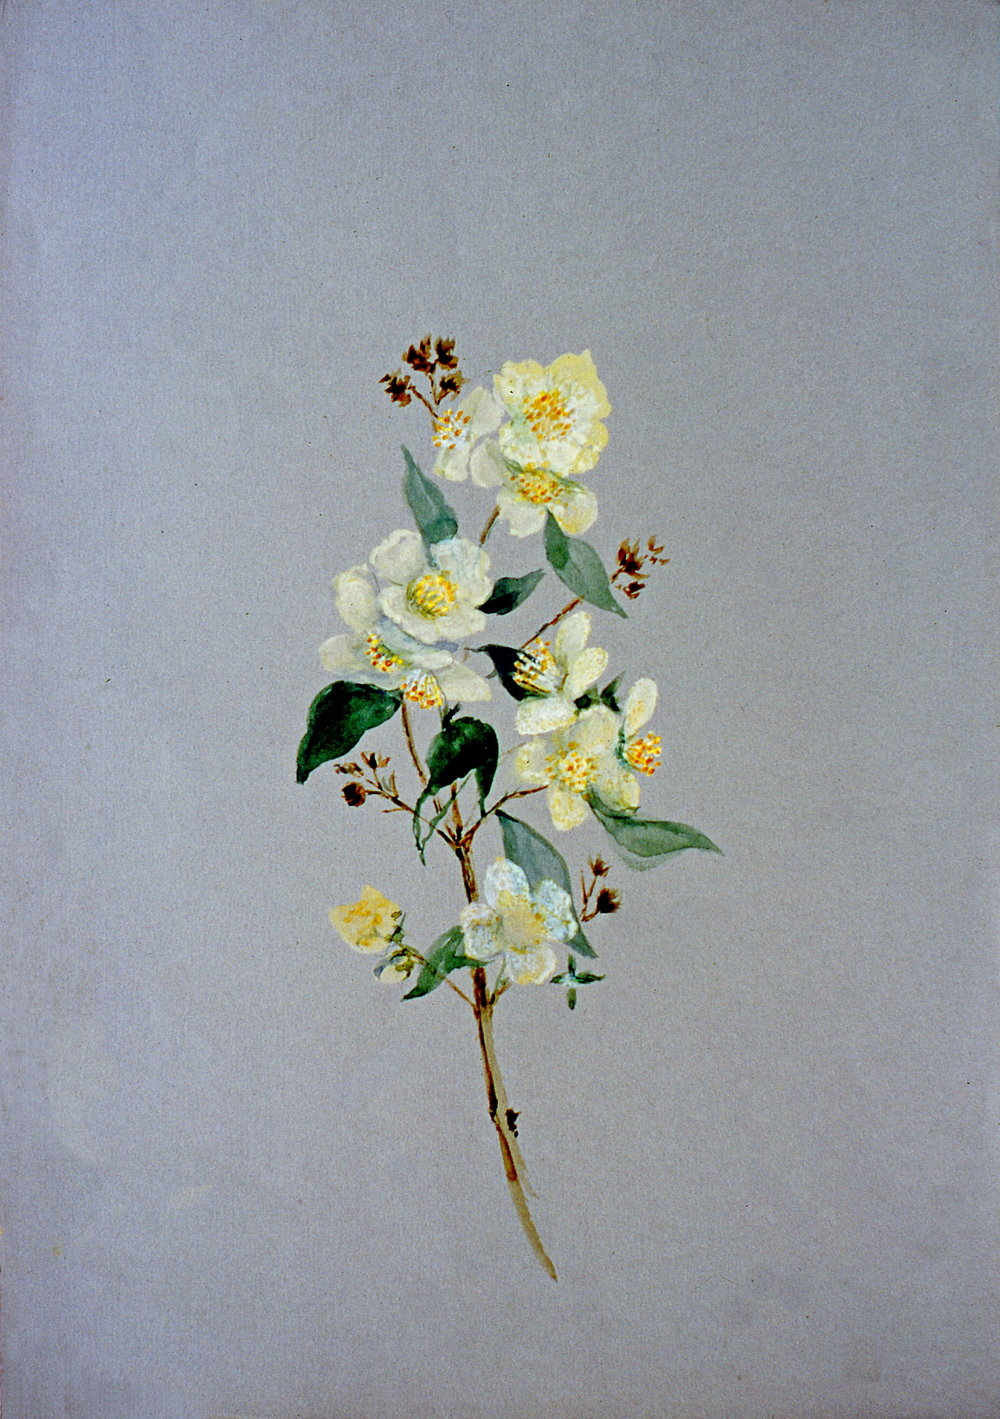 Untitled (Botanical - Yellow Flowers), n.d. Julia Bullock Webster, watercolour on paper, 35.3 cm x 25 cm, 2003.02.16, gift of The Grist Mill at Keremeos